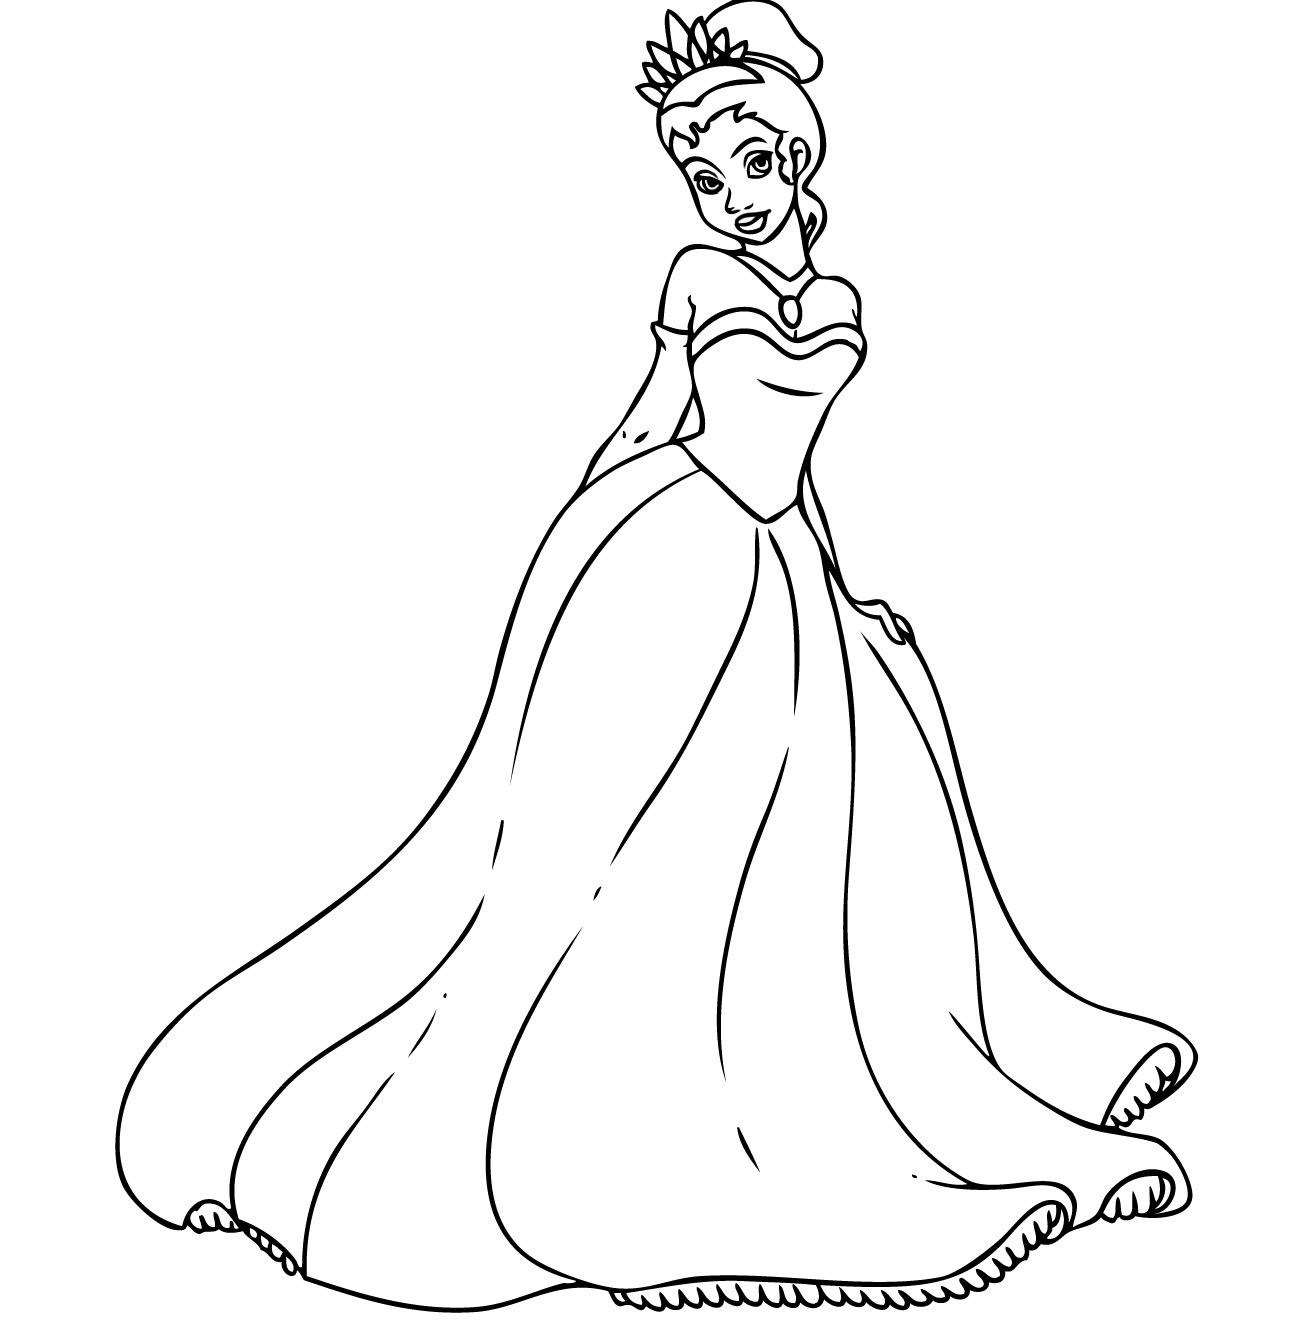 coloring page Princess and the Frog | Princess coloring pages ... | 1343x1296